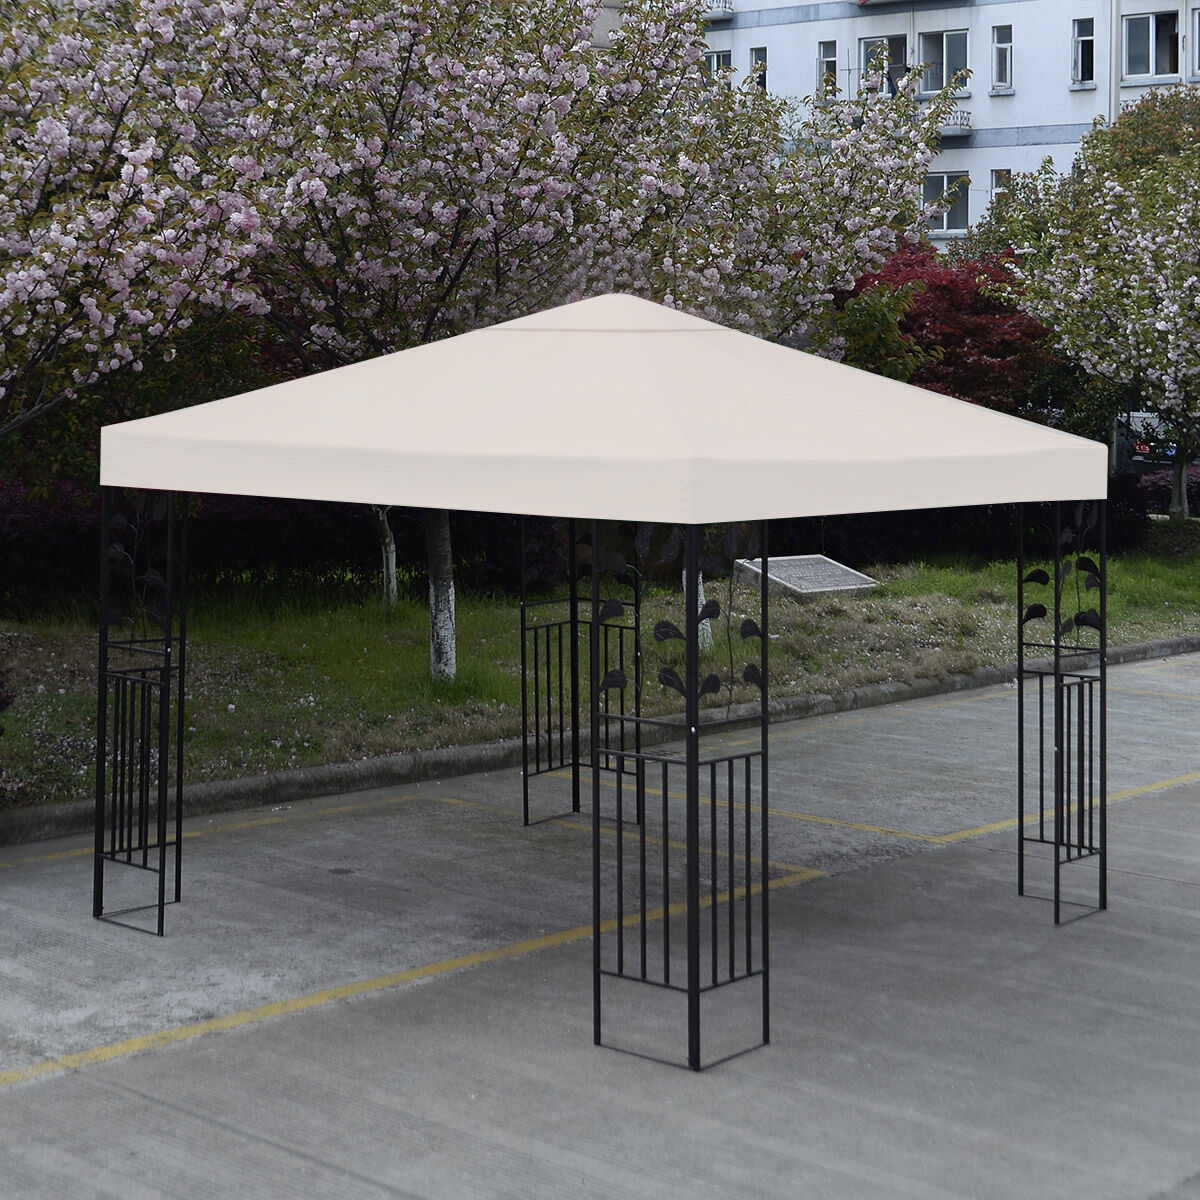 10-039-X-10-039-Gazebo-Top-Cover-Patio-Canopy-Replacement-1-Tier-or-2-Tier-3-Color-New thumbnail 6